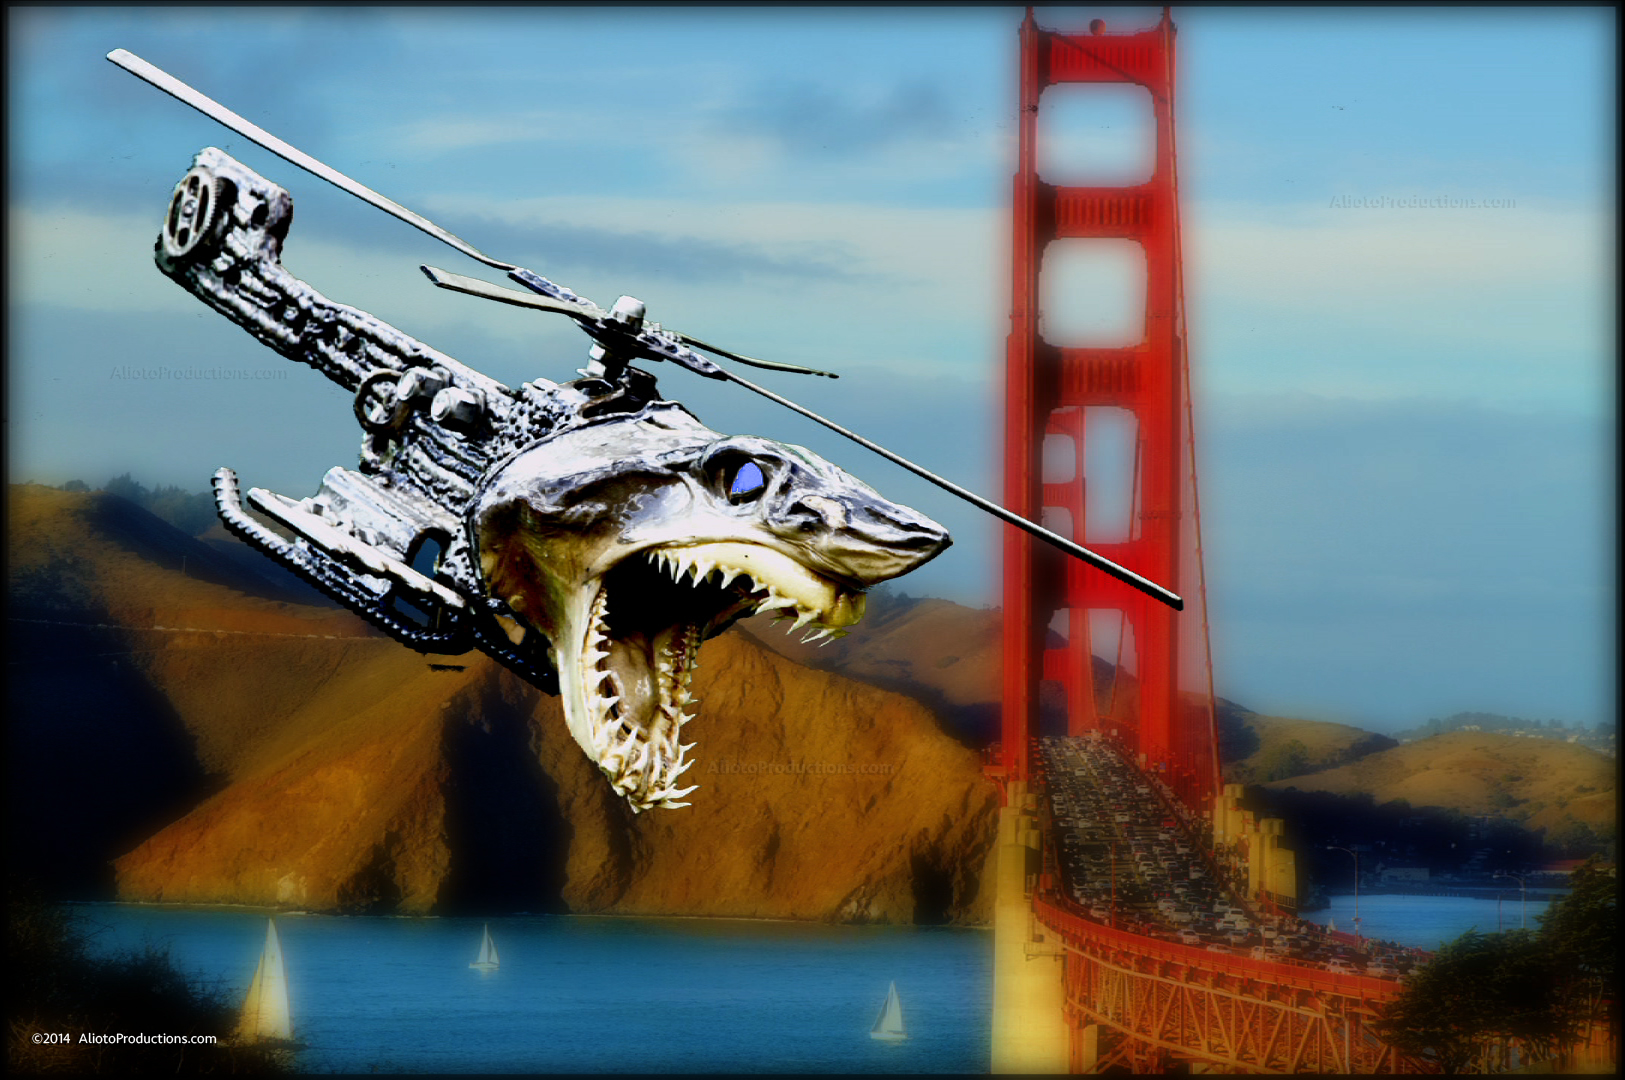 Golden Gate Bridge / Shark